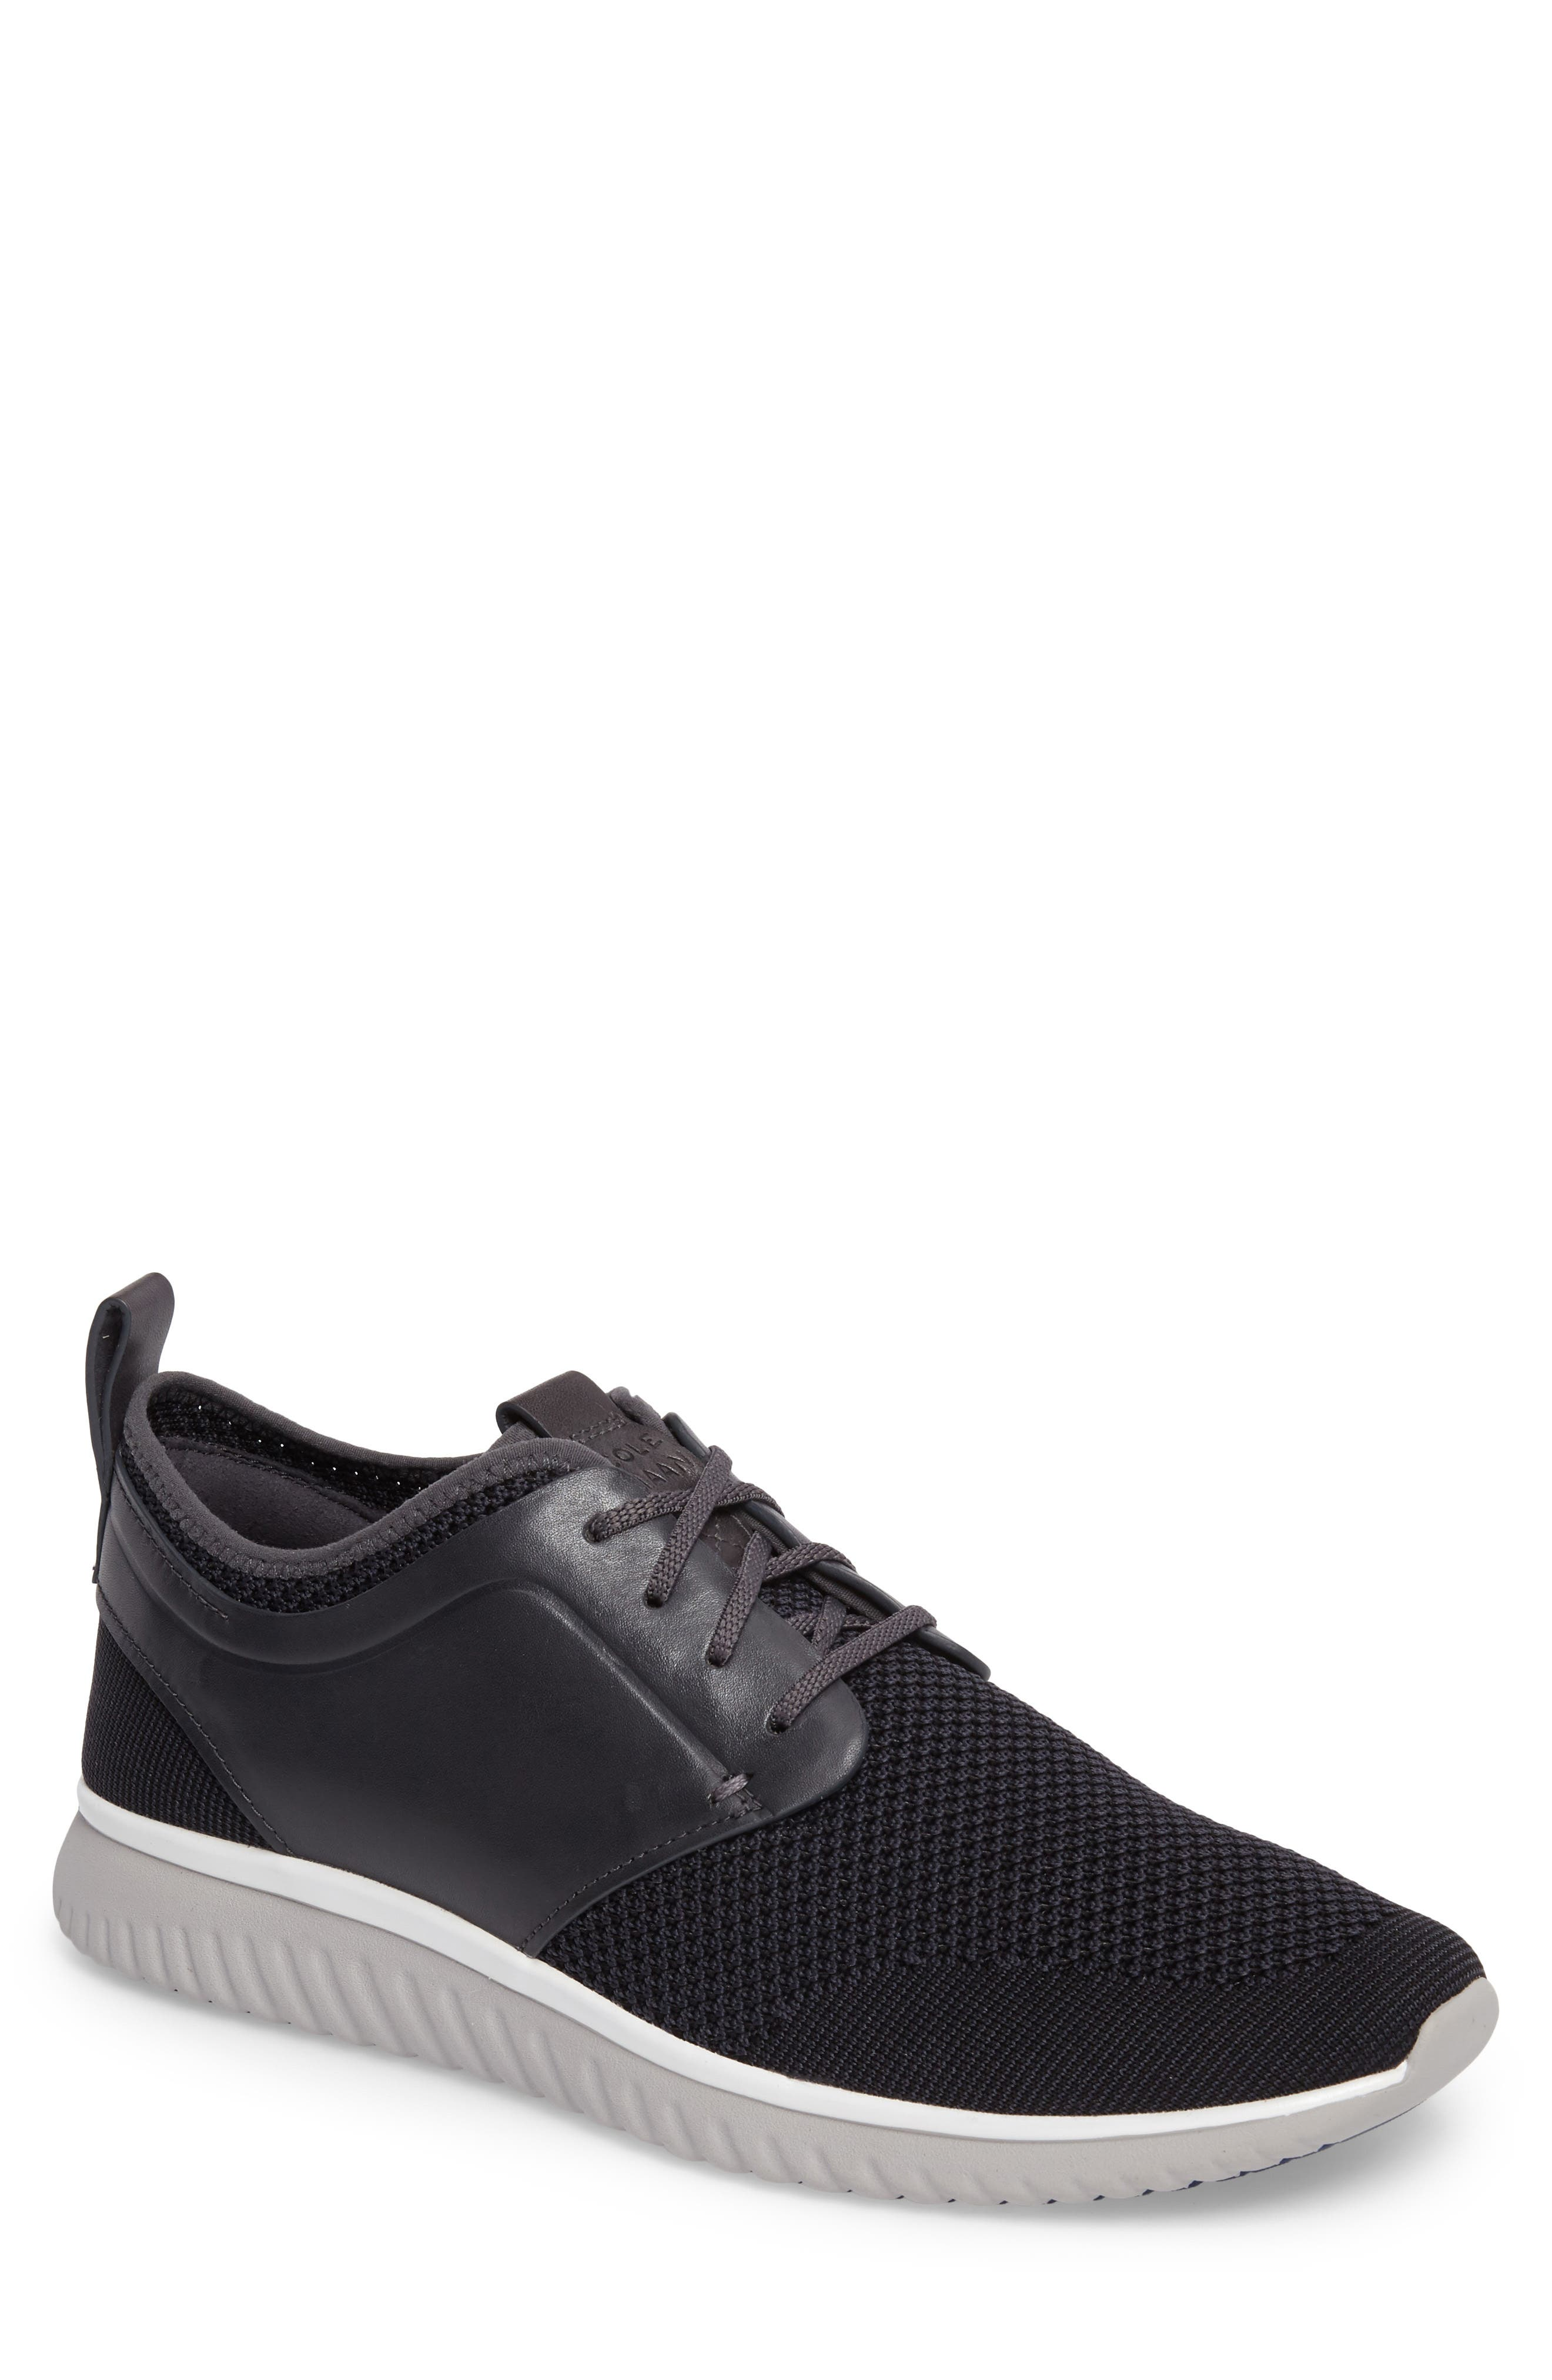 Cole Haan Grand Motion Knit Oxford (Men)